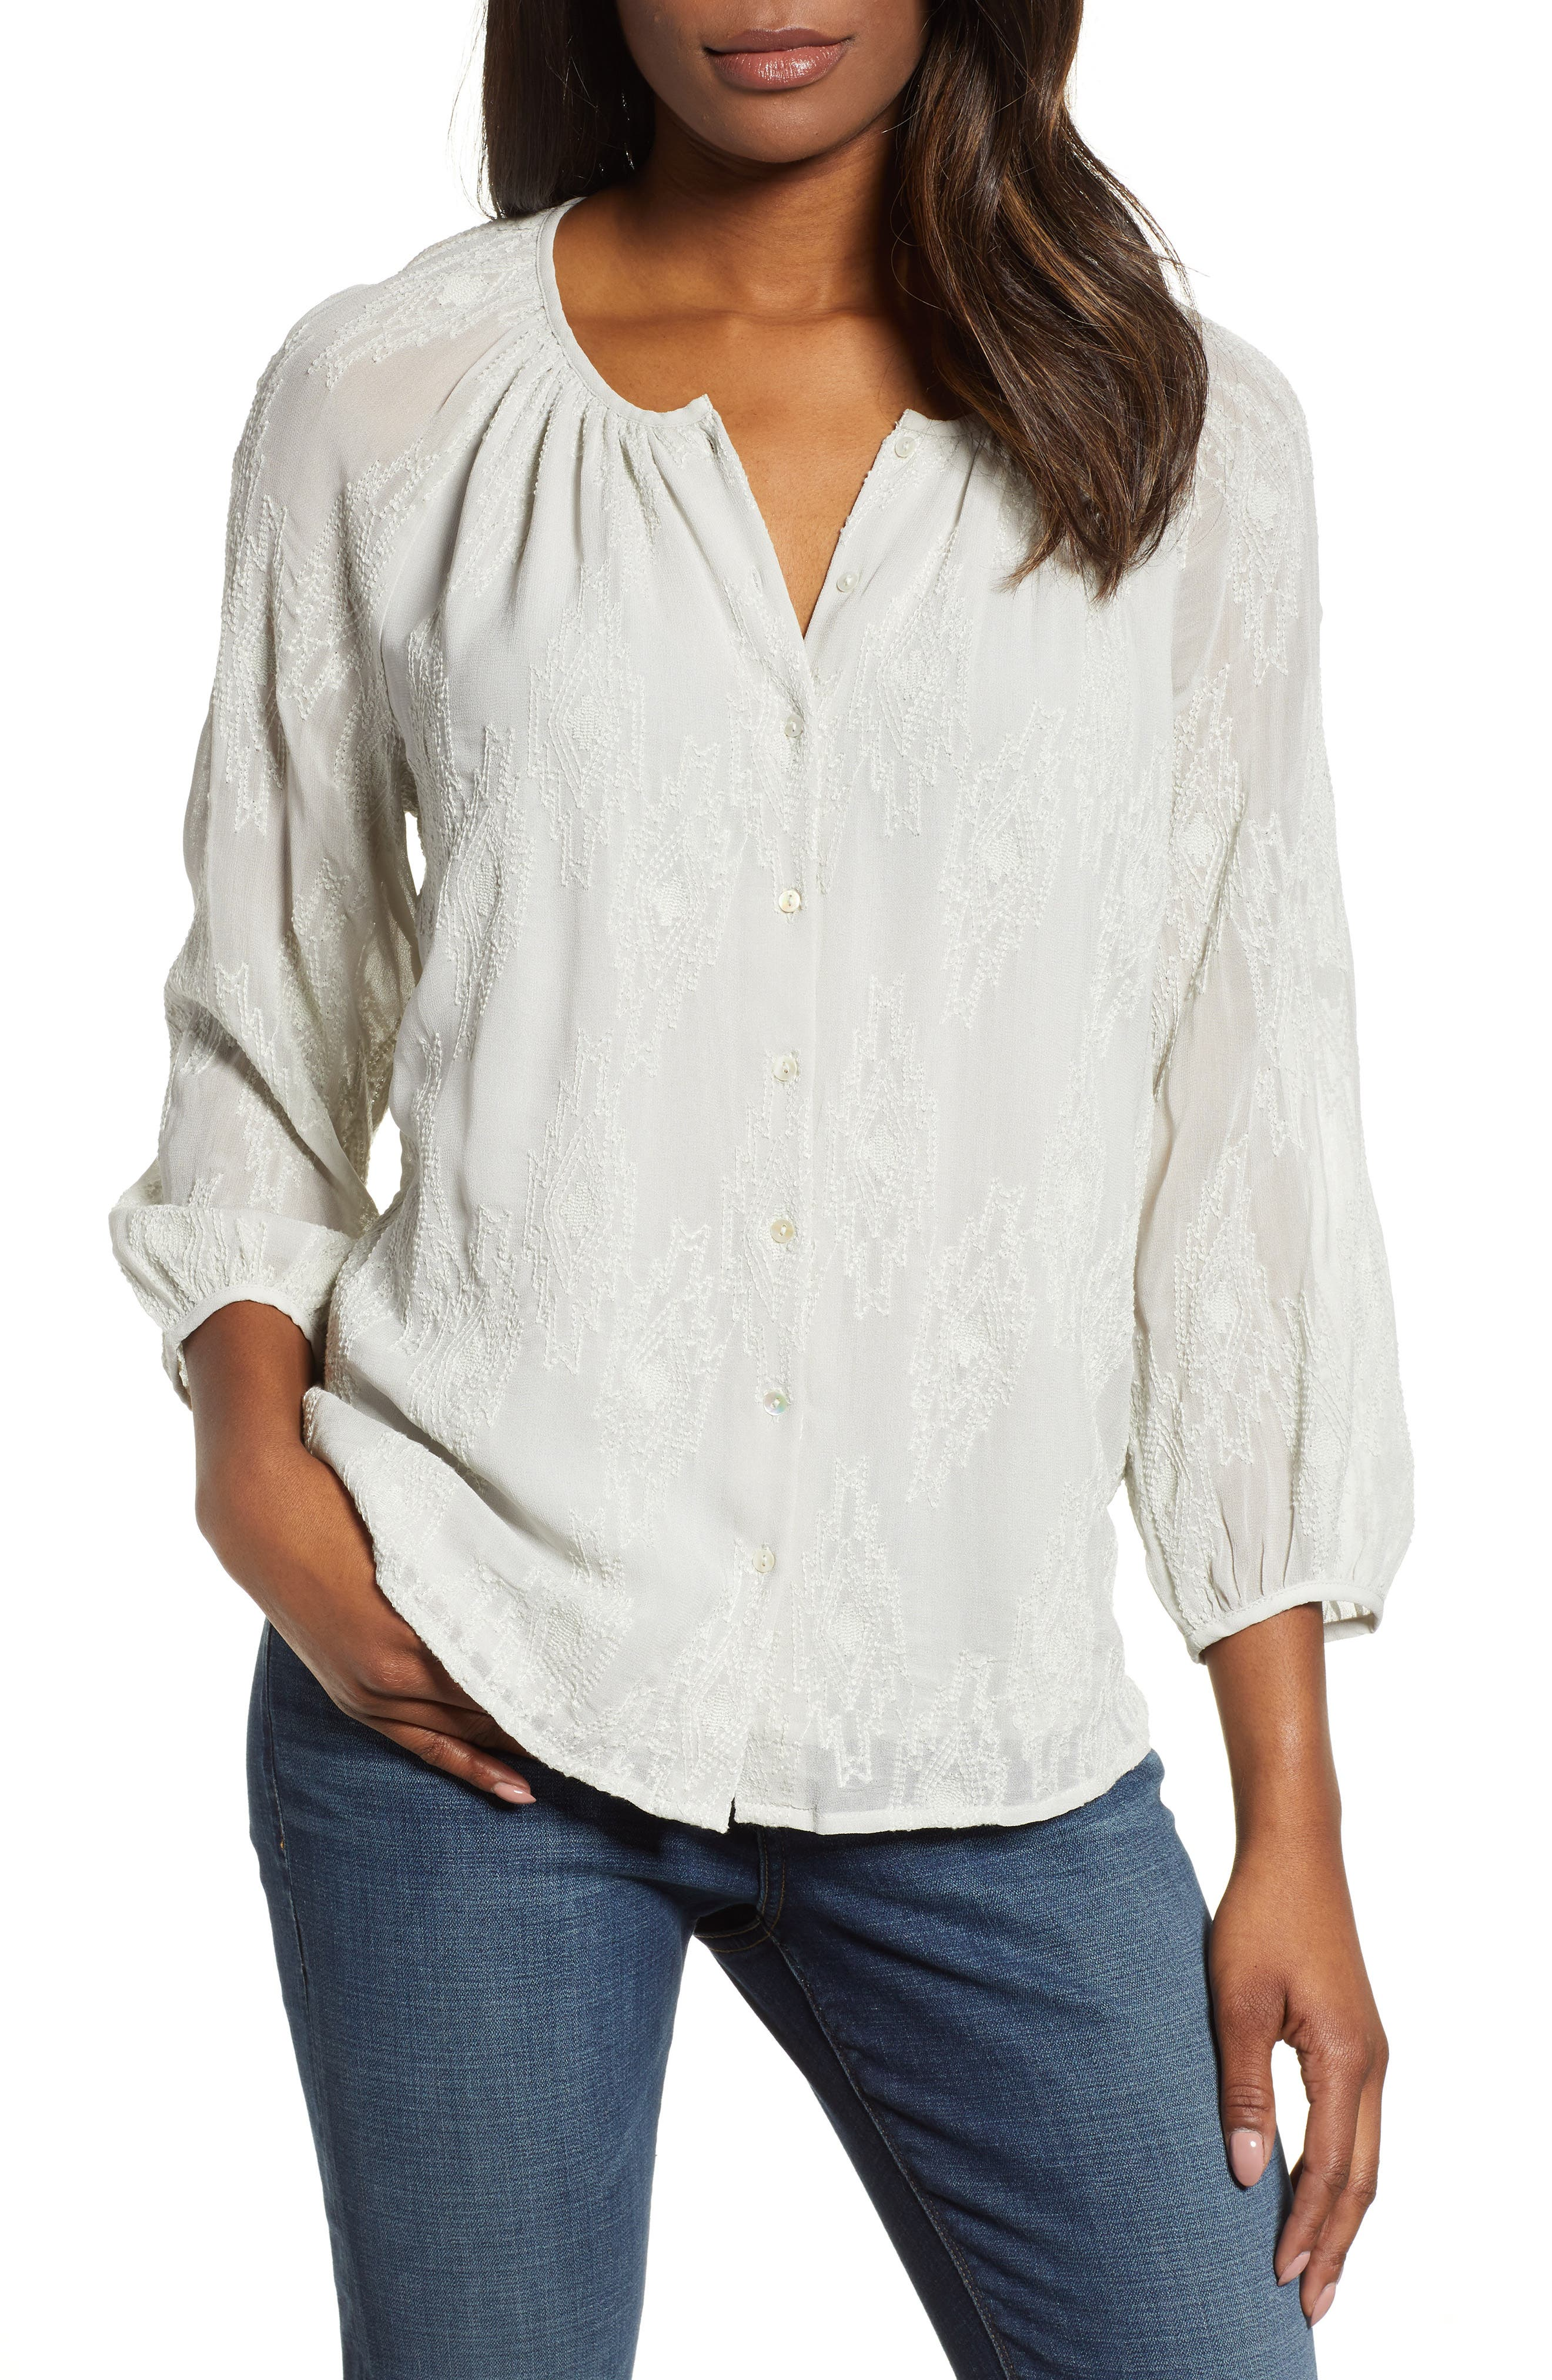 LUCKY BRAND, Geo Embroidered Top, Main thumbnail 1, color, PALE BLUE